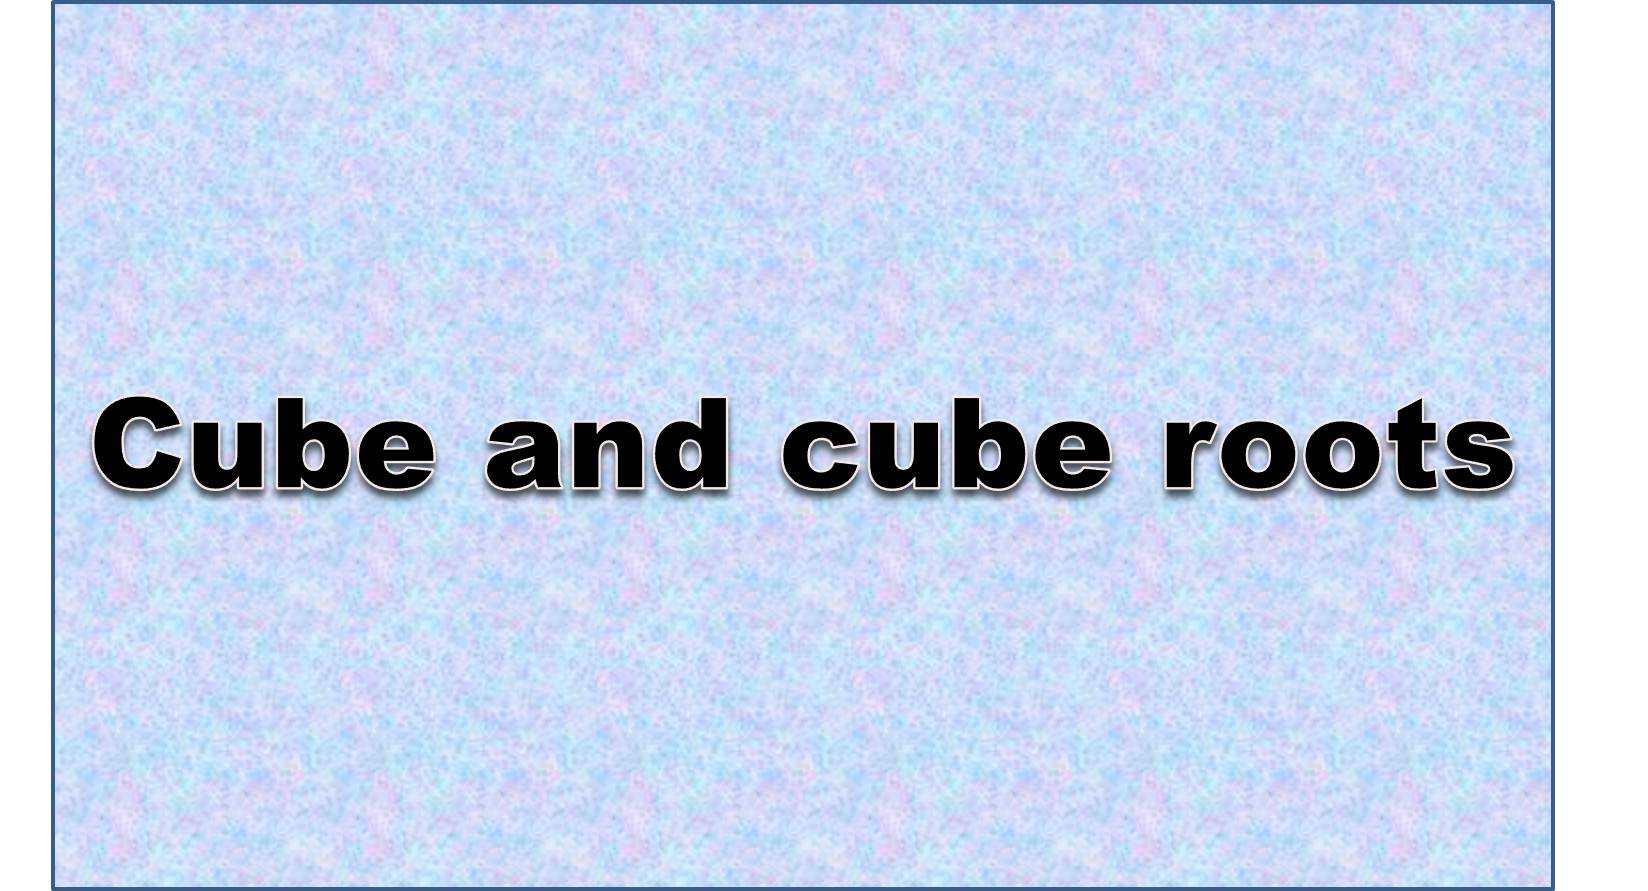 http://study.aisectonline.com/images/Simplifying a cube root.jpg